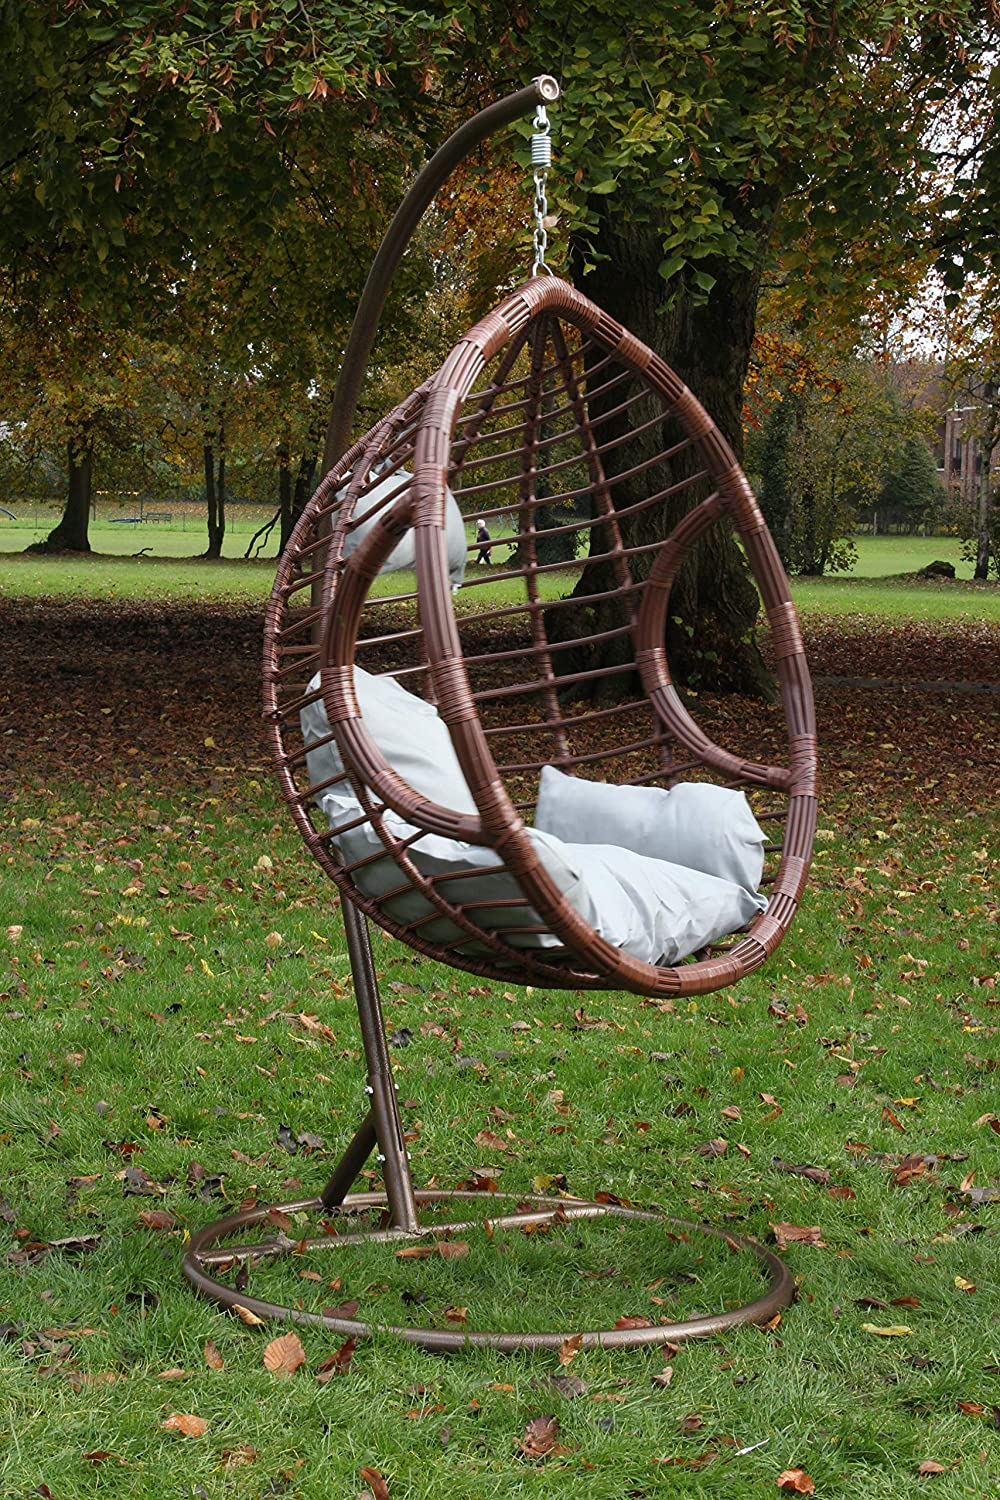 Simplehome C Rattan Swing Egg Chair Garden Patio Indoor Outdoor Hanging Chair With Stand Cushion Brown 150kg Capacity Amazon Co Uk Garden Outdoors